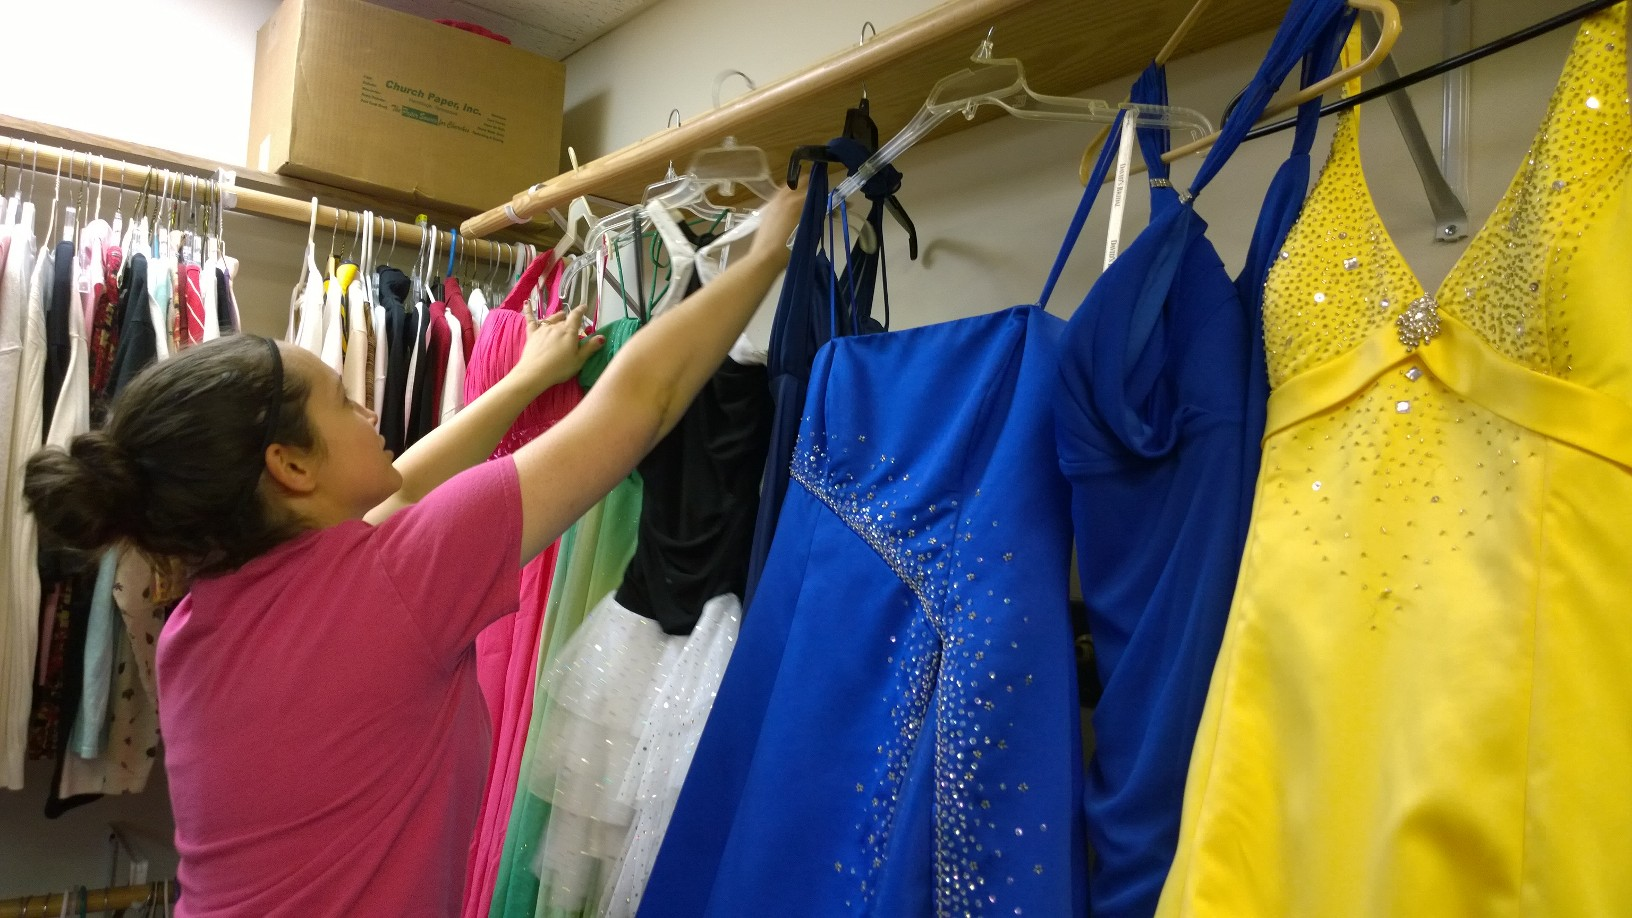 Mandi Daniels, a prom closet volunteer, helps hang newly donated dresses to be steamed and hung in the prom closet to await the next prom. || JESSIE HORTON photo